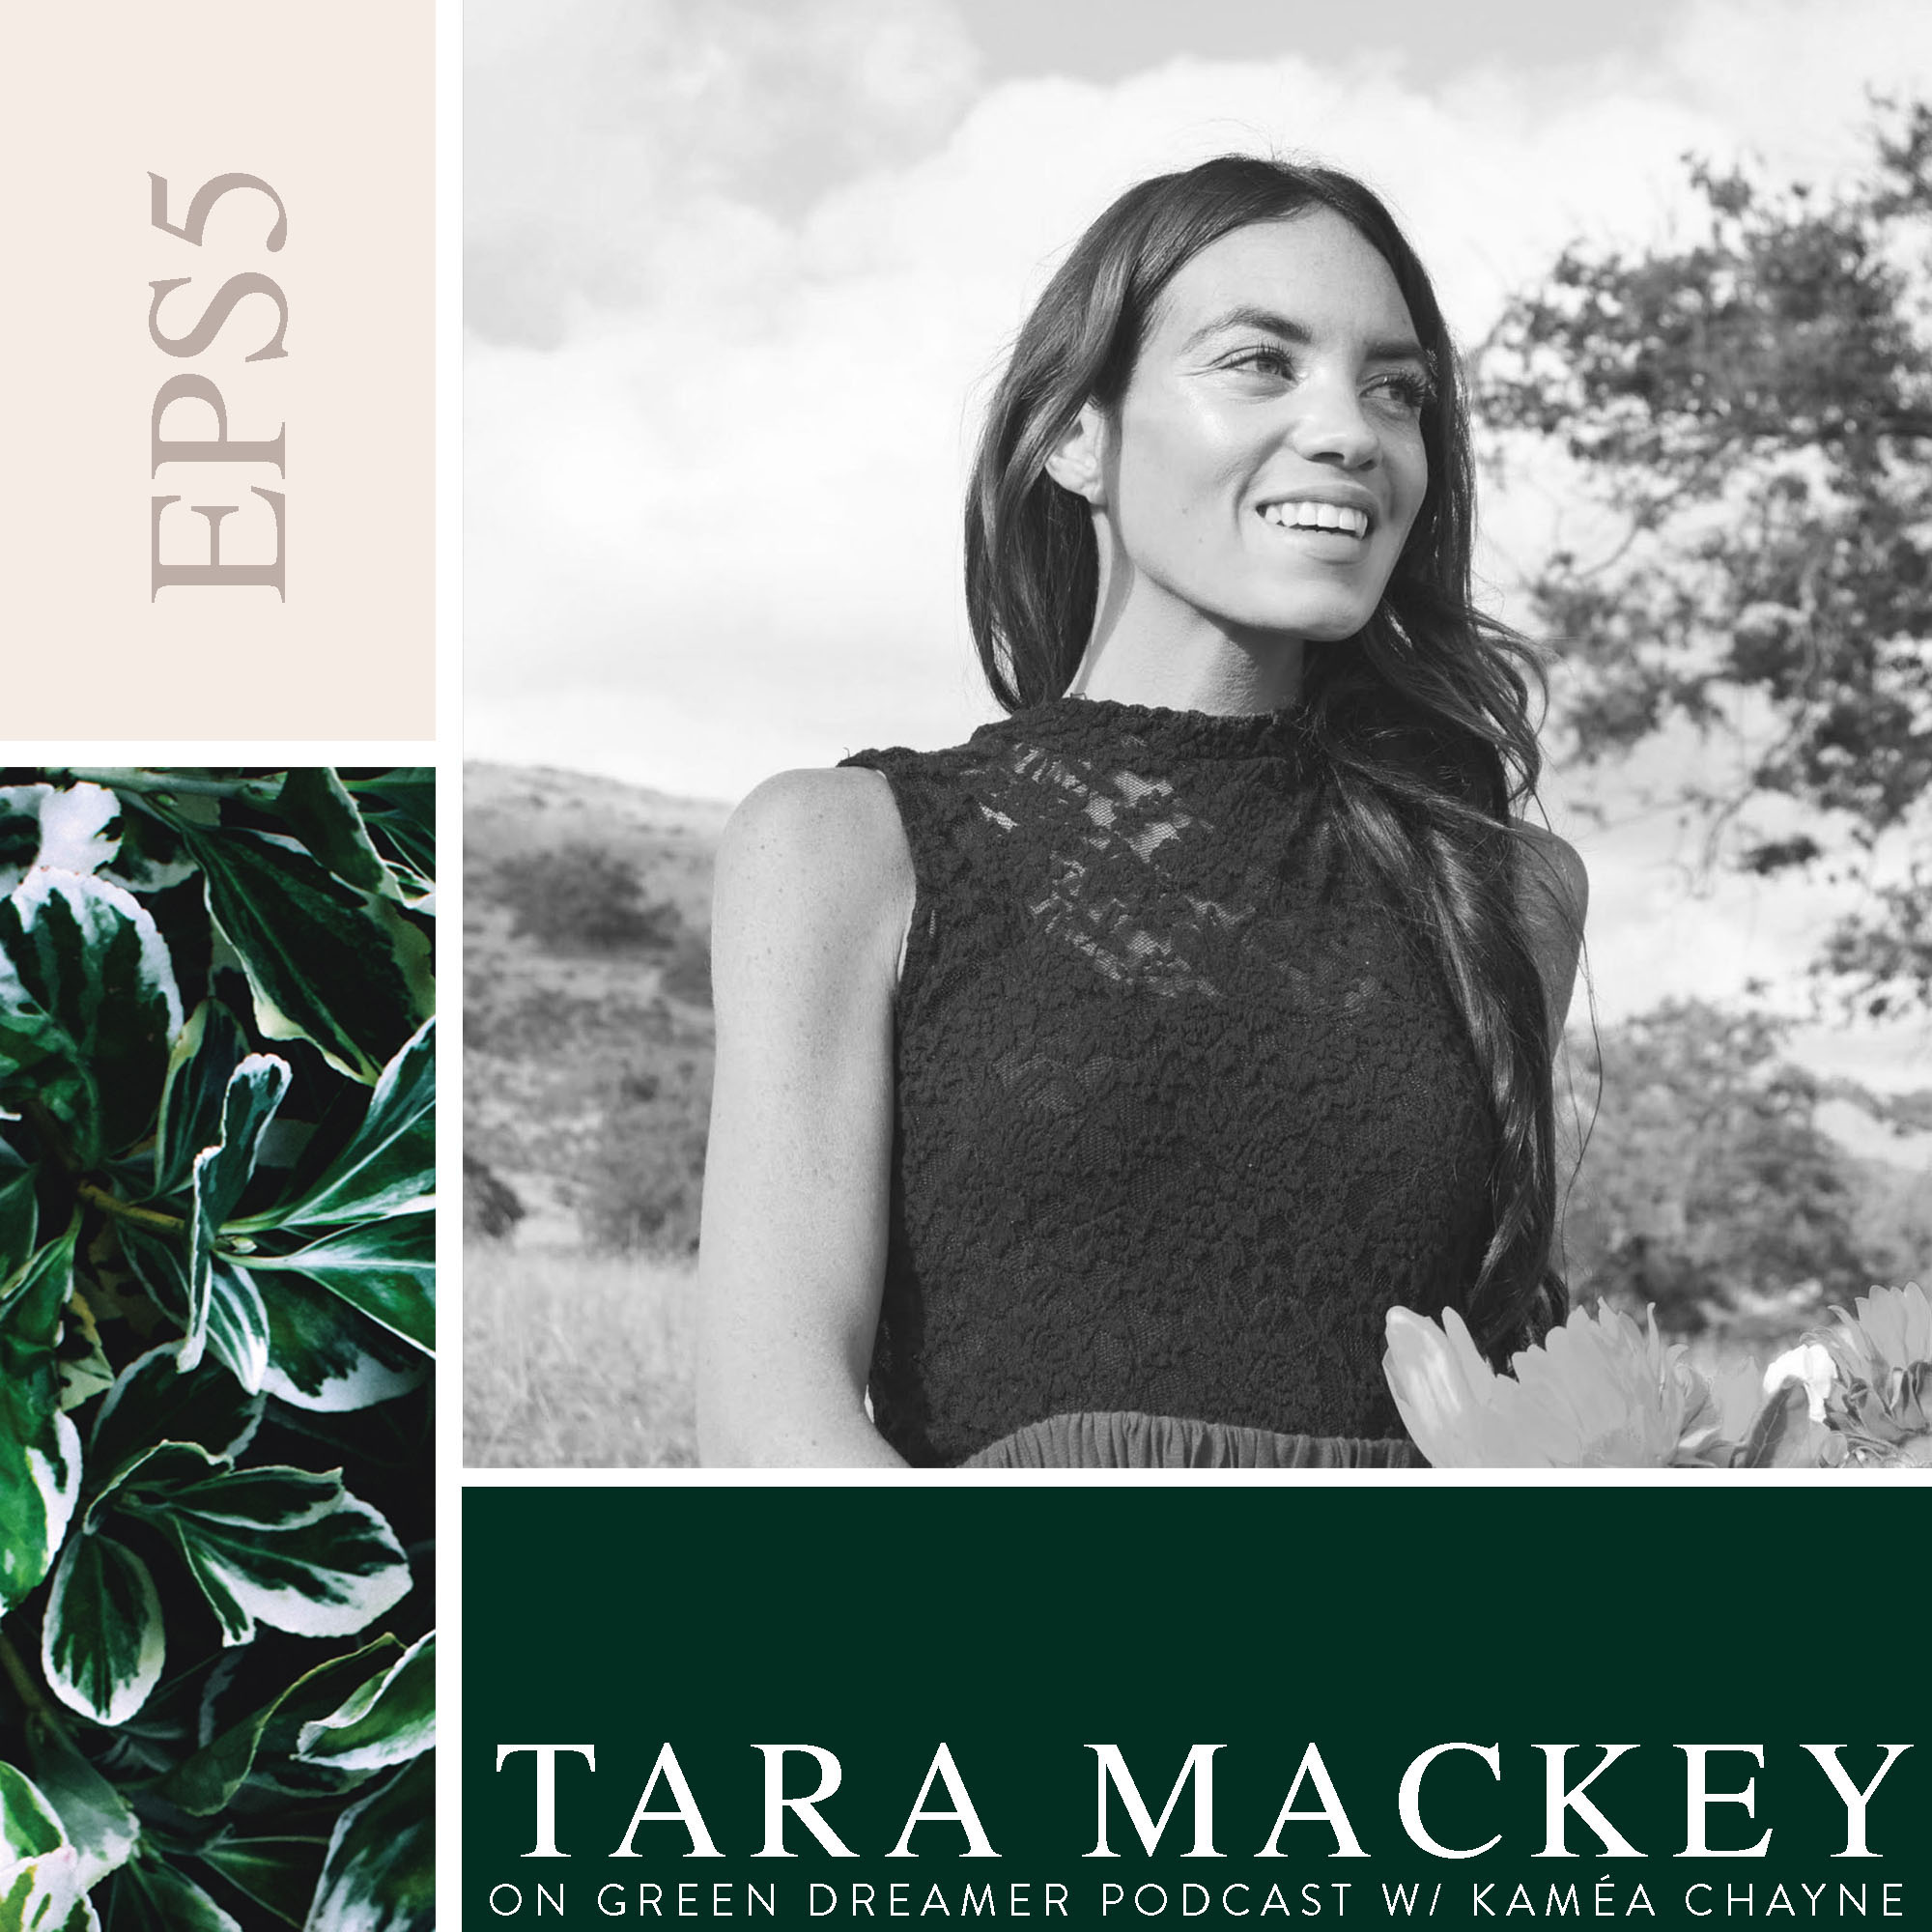 Tara Mackey talks Sustainability via Green Dreamer Podcast with Kaméa Chayne